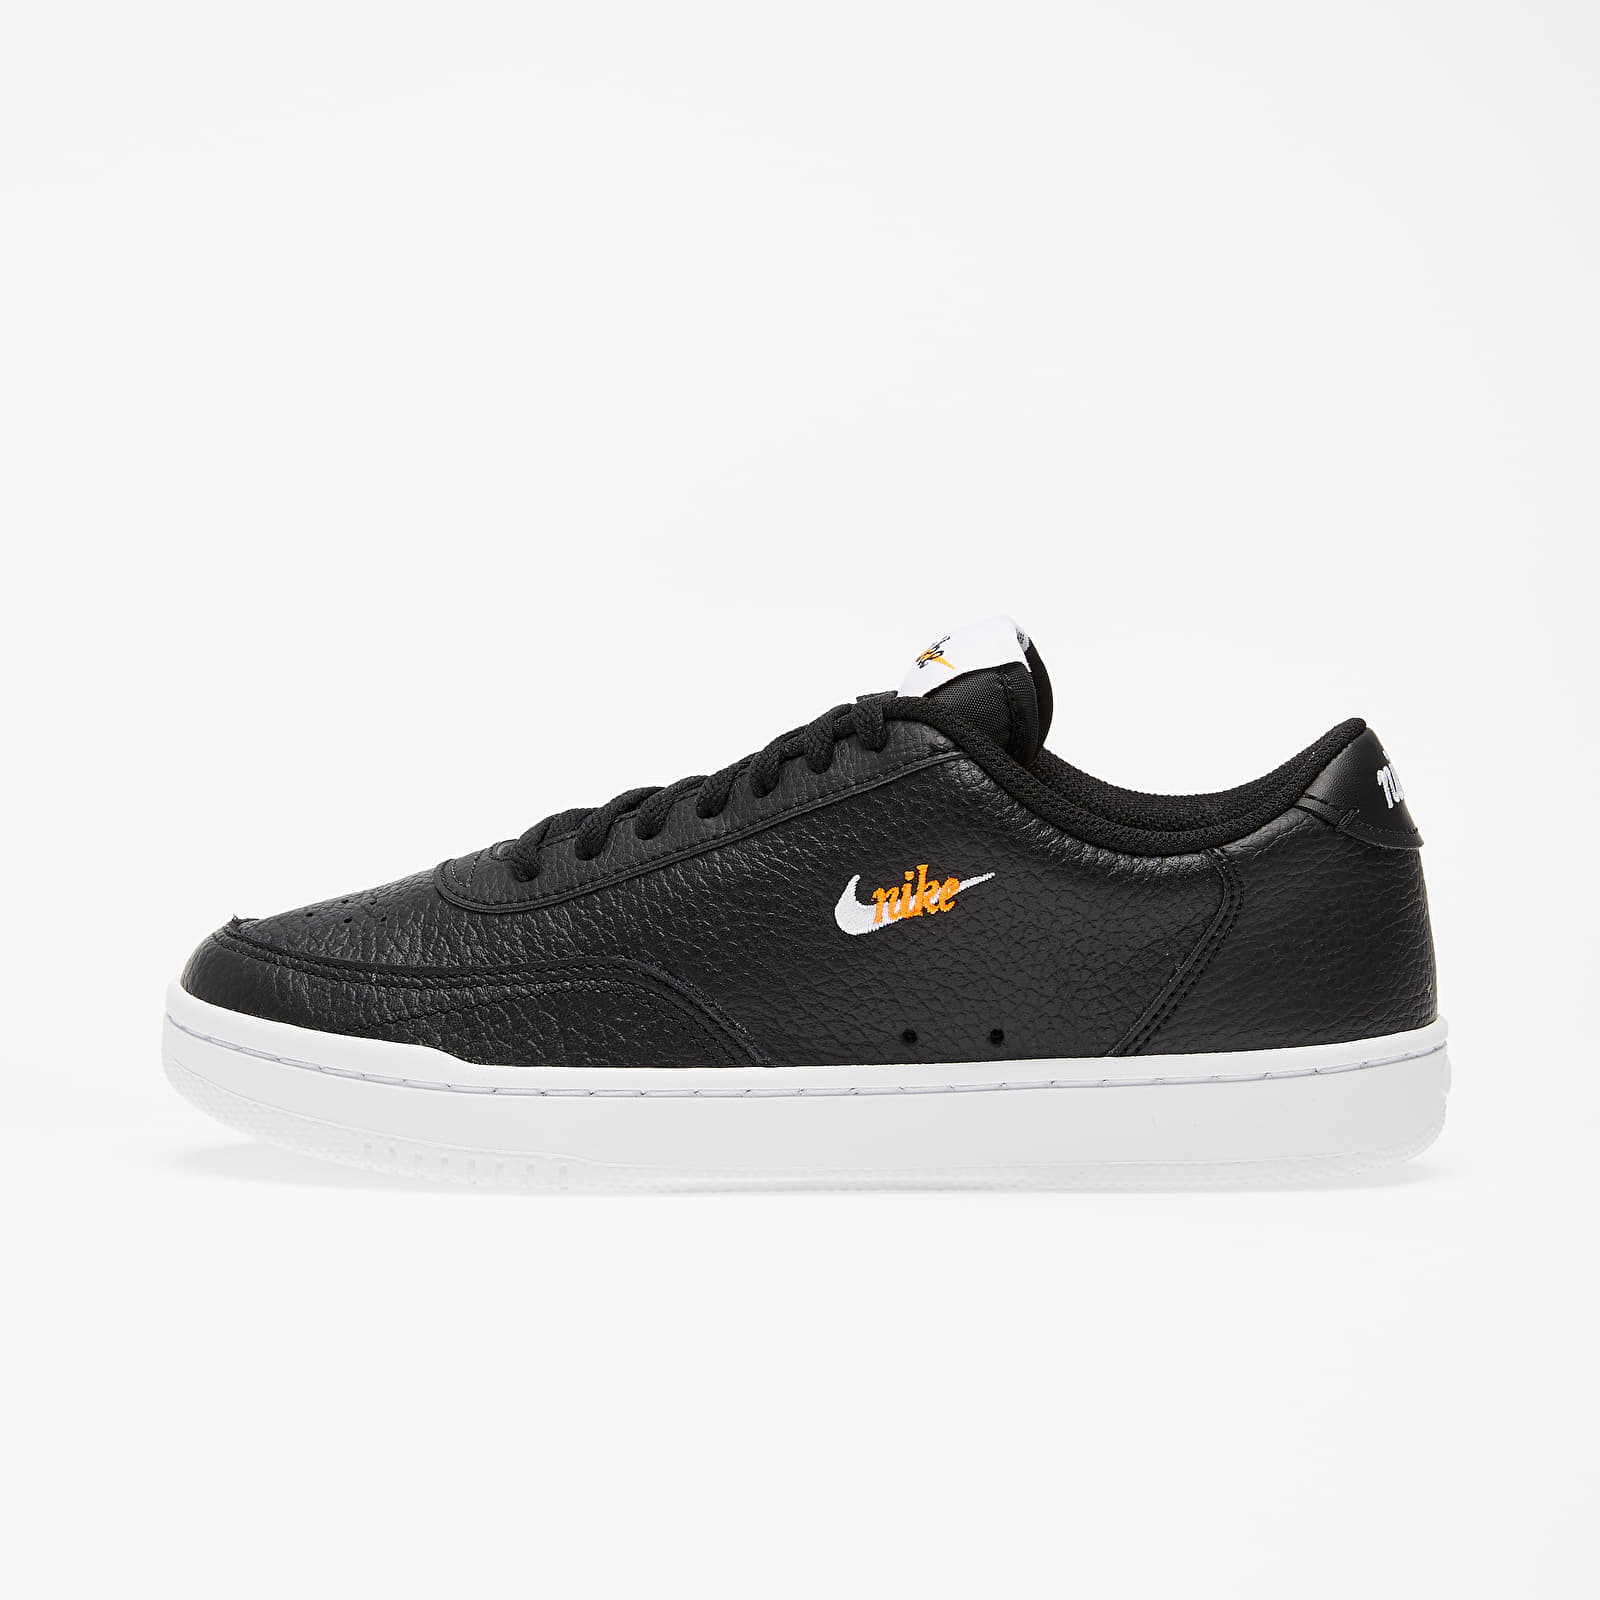 Women's shoes Nike Wmns Court Vintage Premium Black/ White-Total Orange